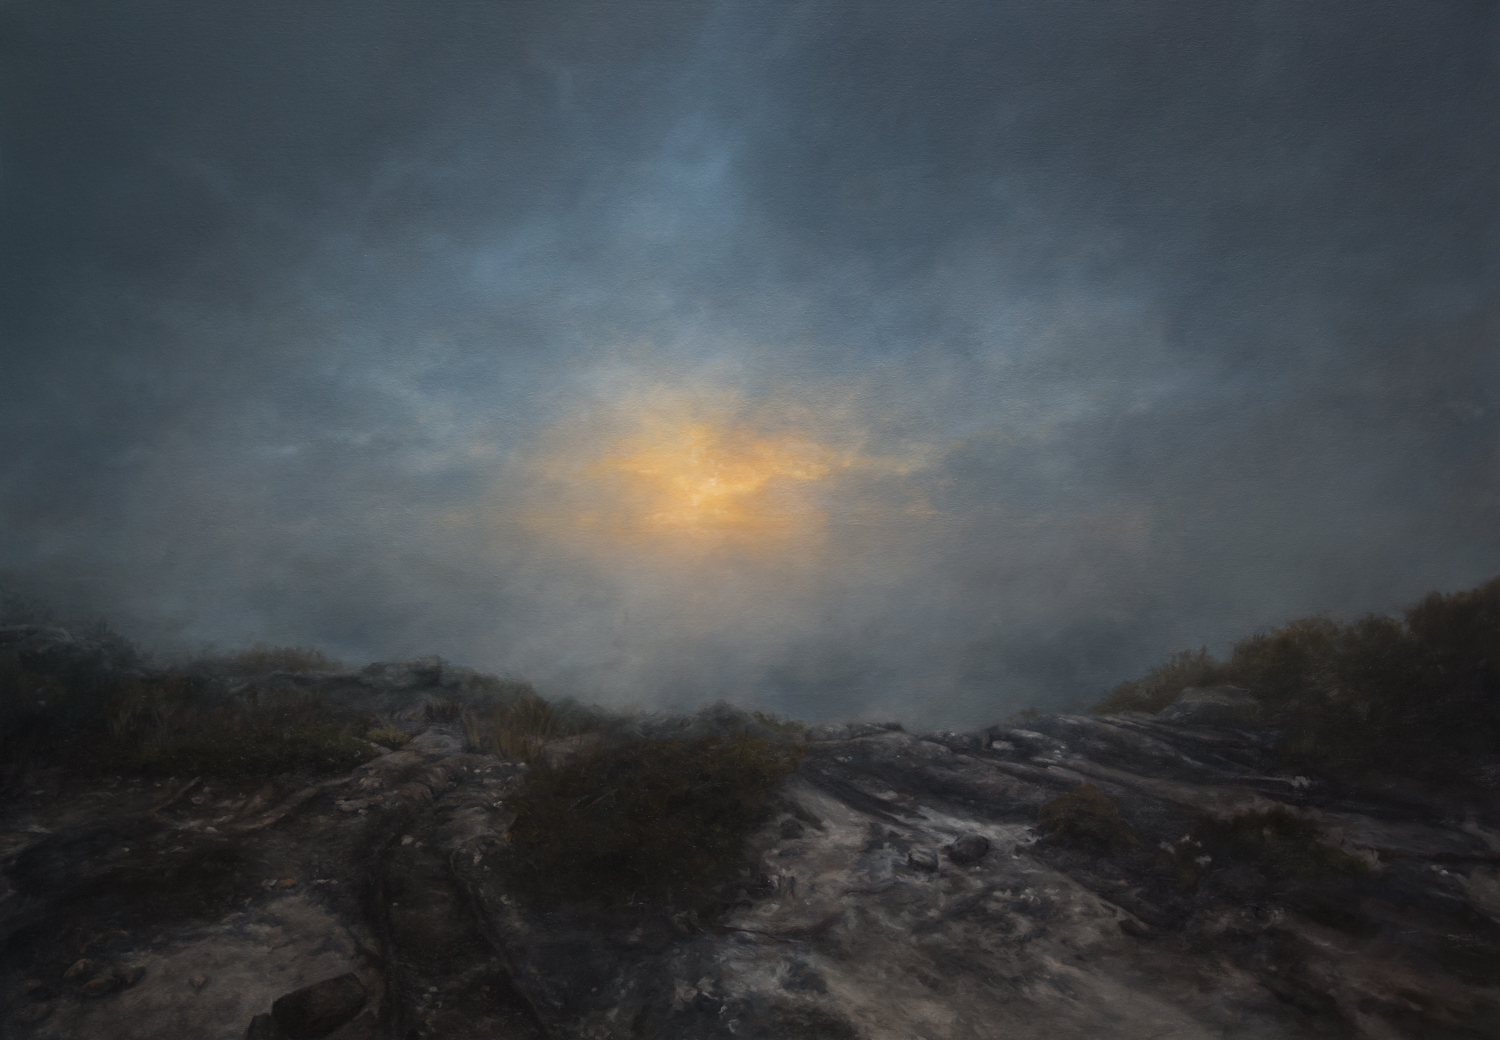 into the intimate expanse - The atmospheric paintings of into the intimate expanse represent an ongoing inquiry into all that may be discerned, concerning broader reality and experience, from the patterns and principles observed in the natural world.Exhibition 14 - 25 March 2018Art Space on the Concourse - Chatswood